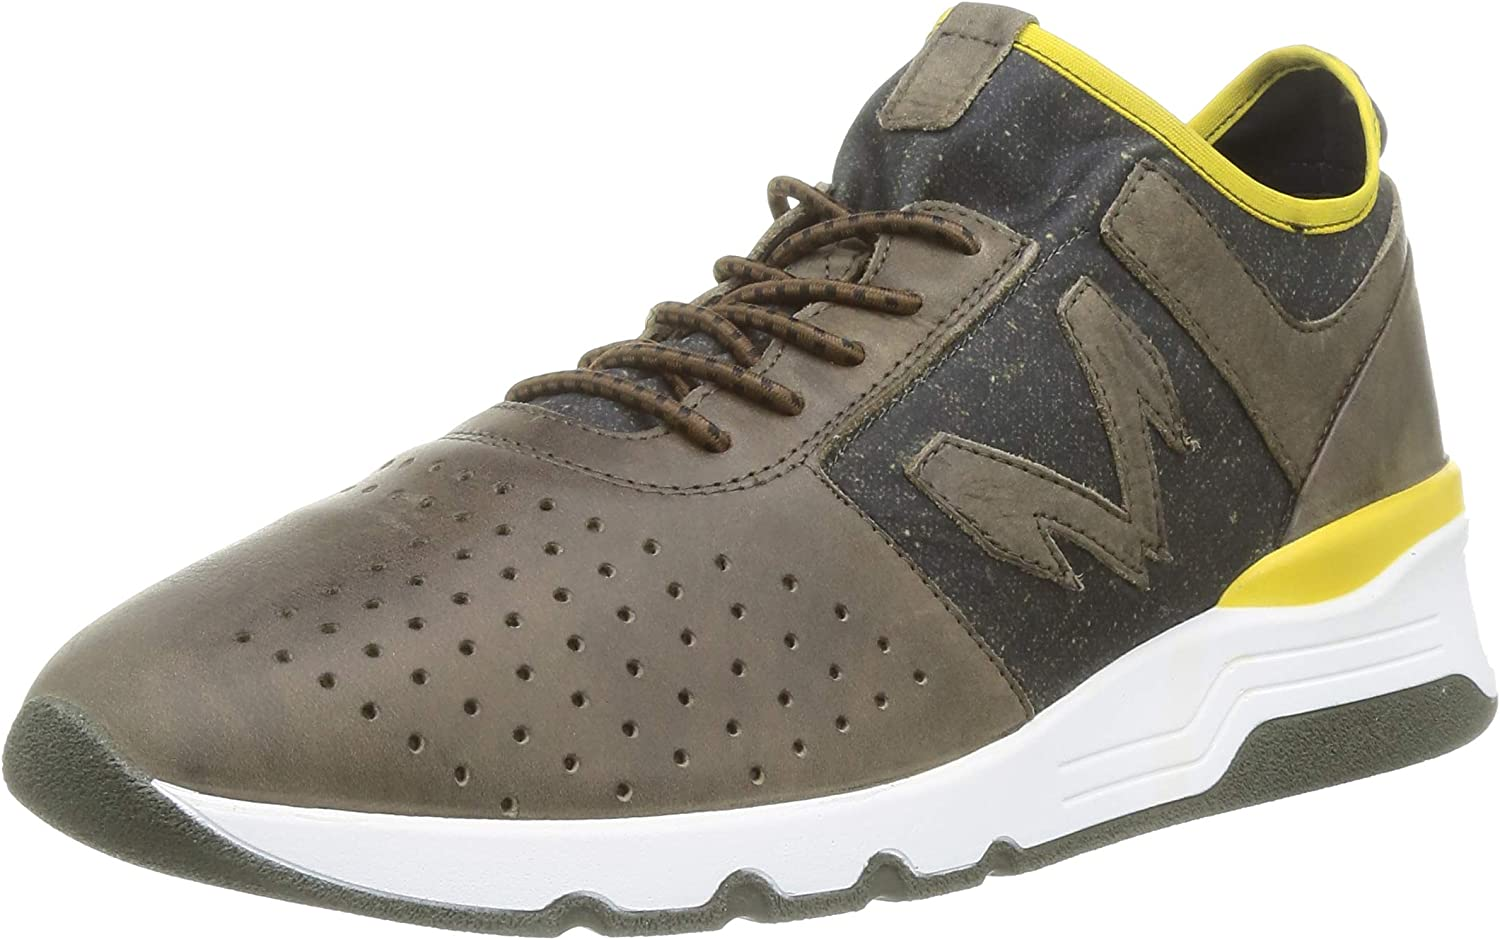 MARTINELLI Men's Low-top Trainers Oxford